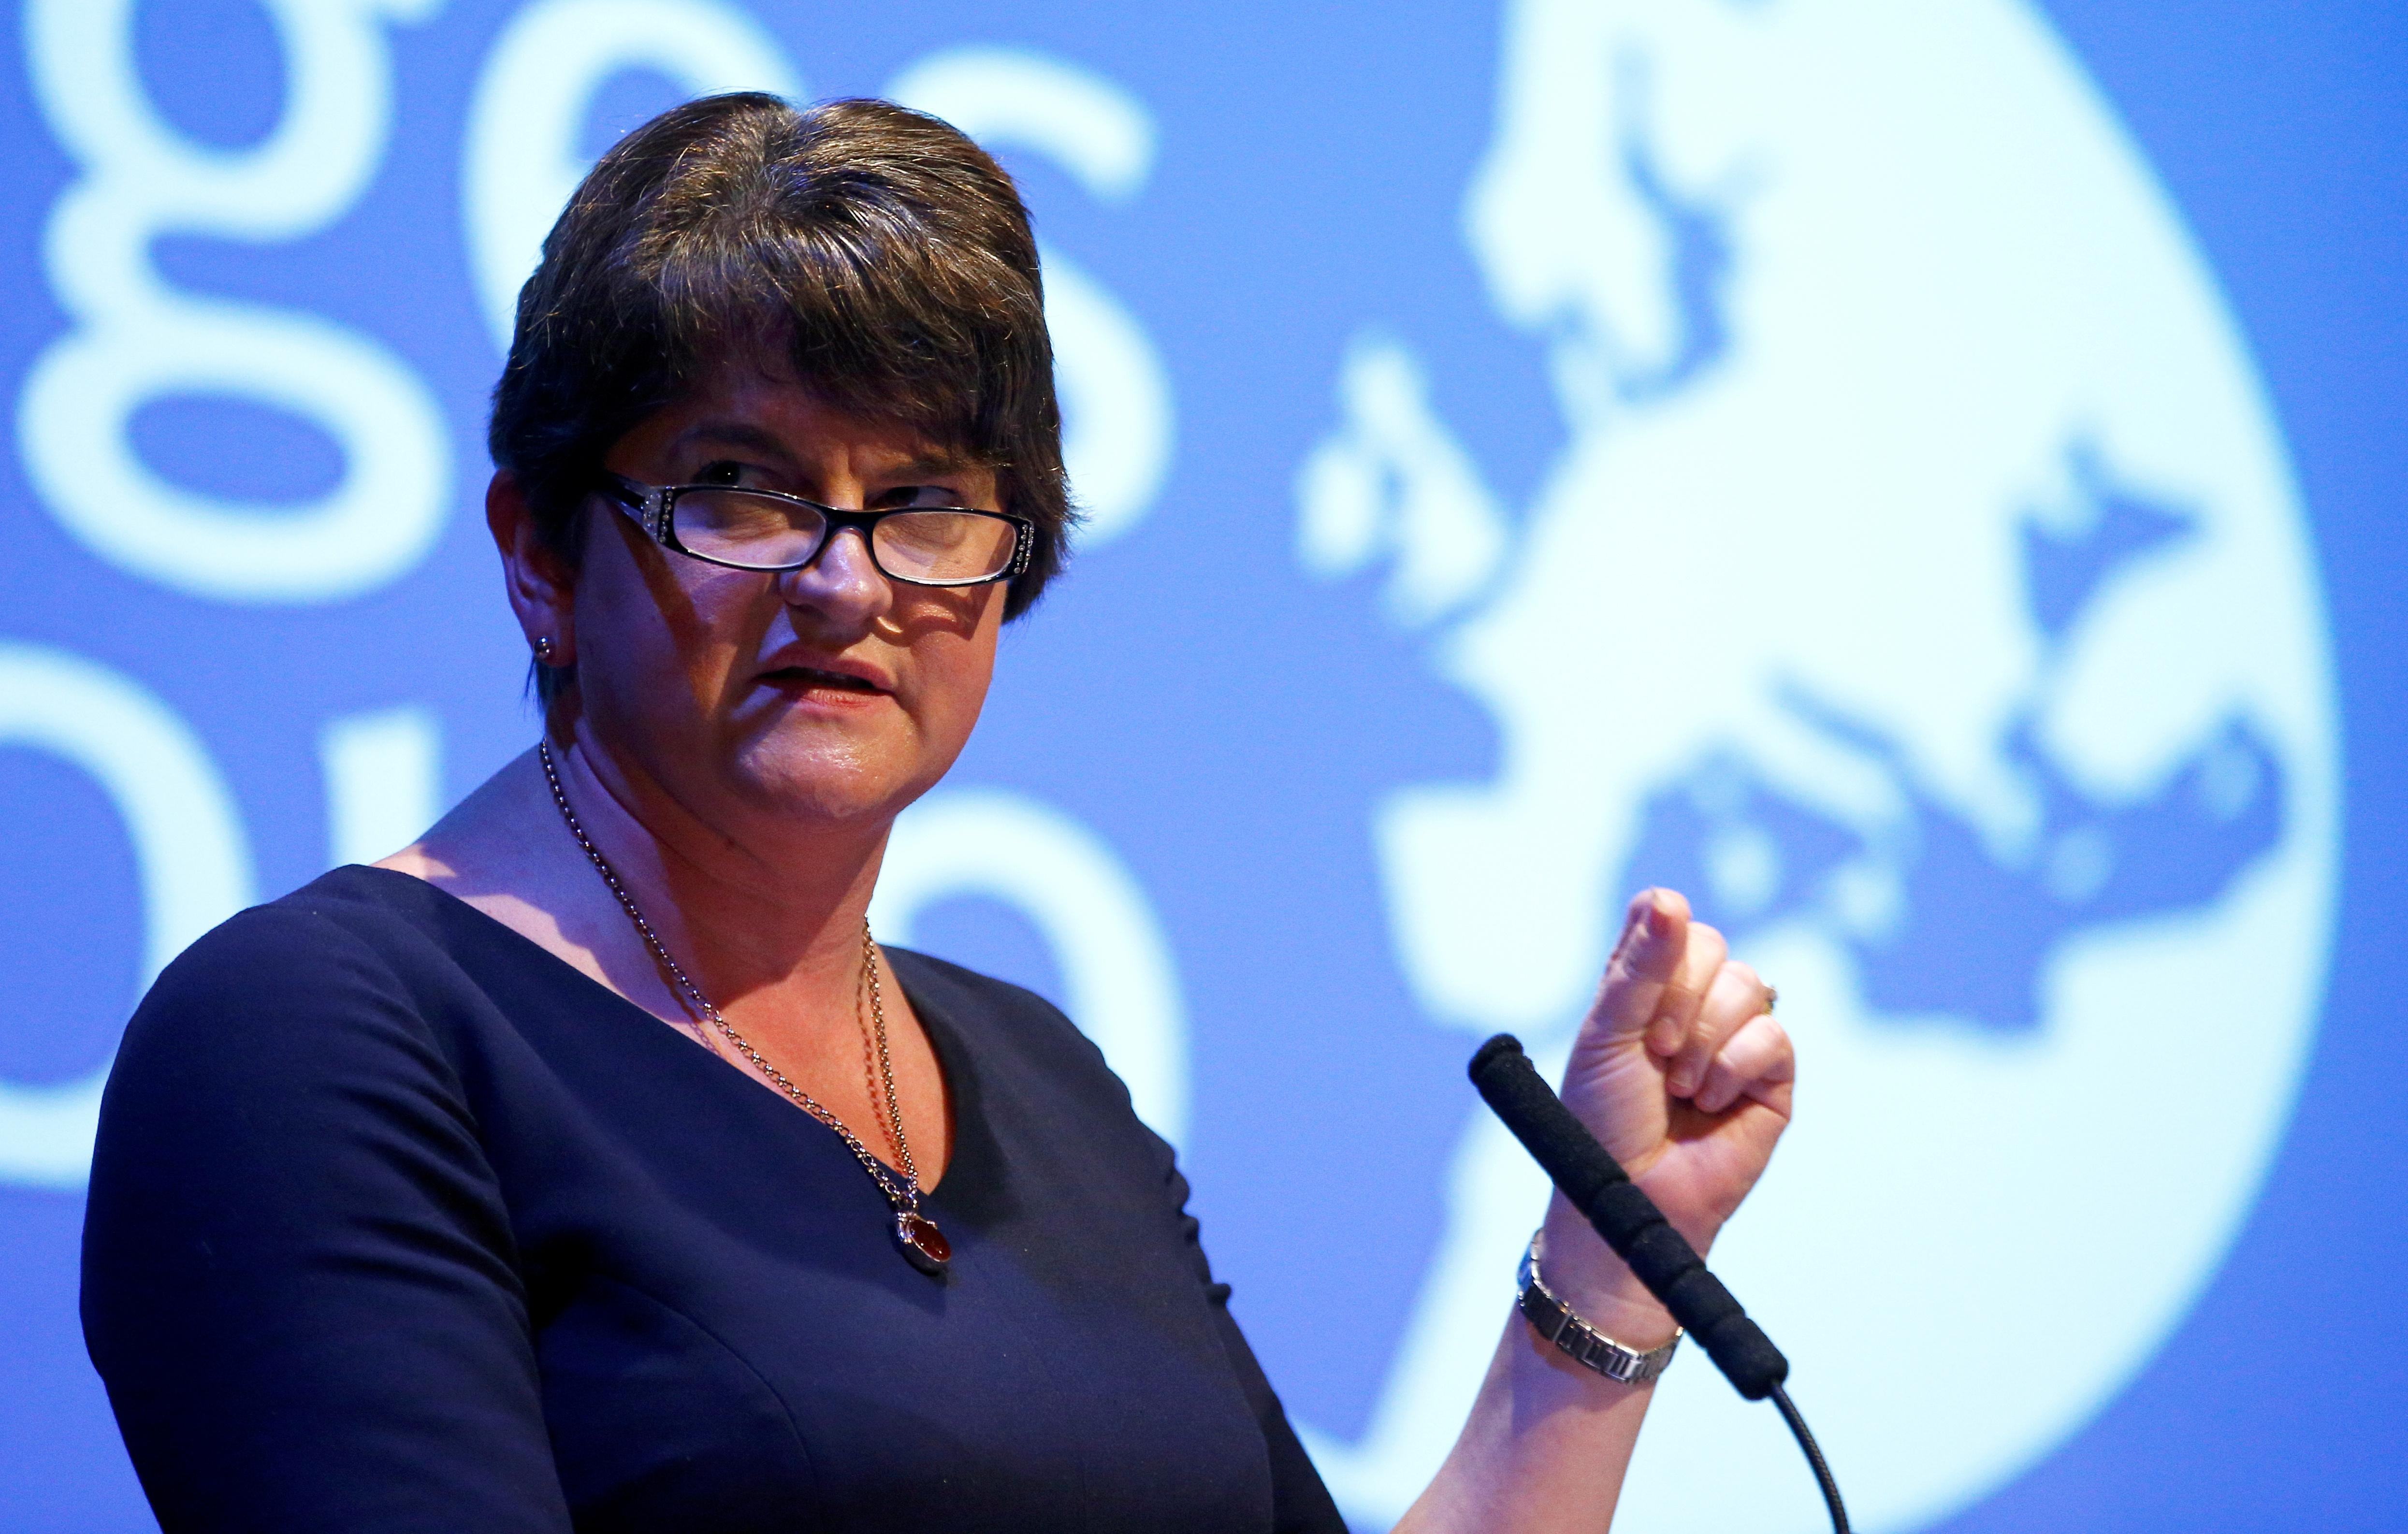 North Ireland's DUP says it cannot support Brexit deal as it stands